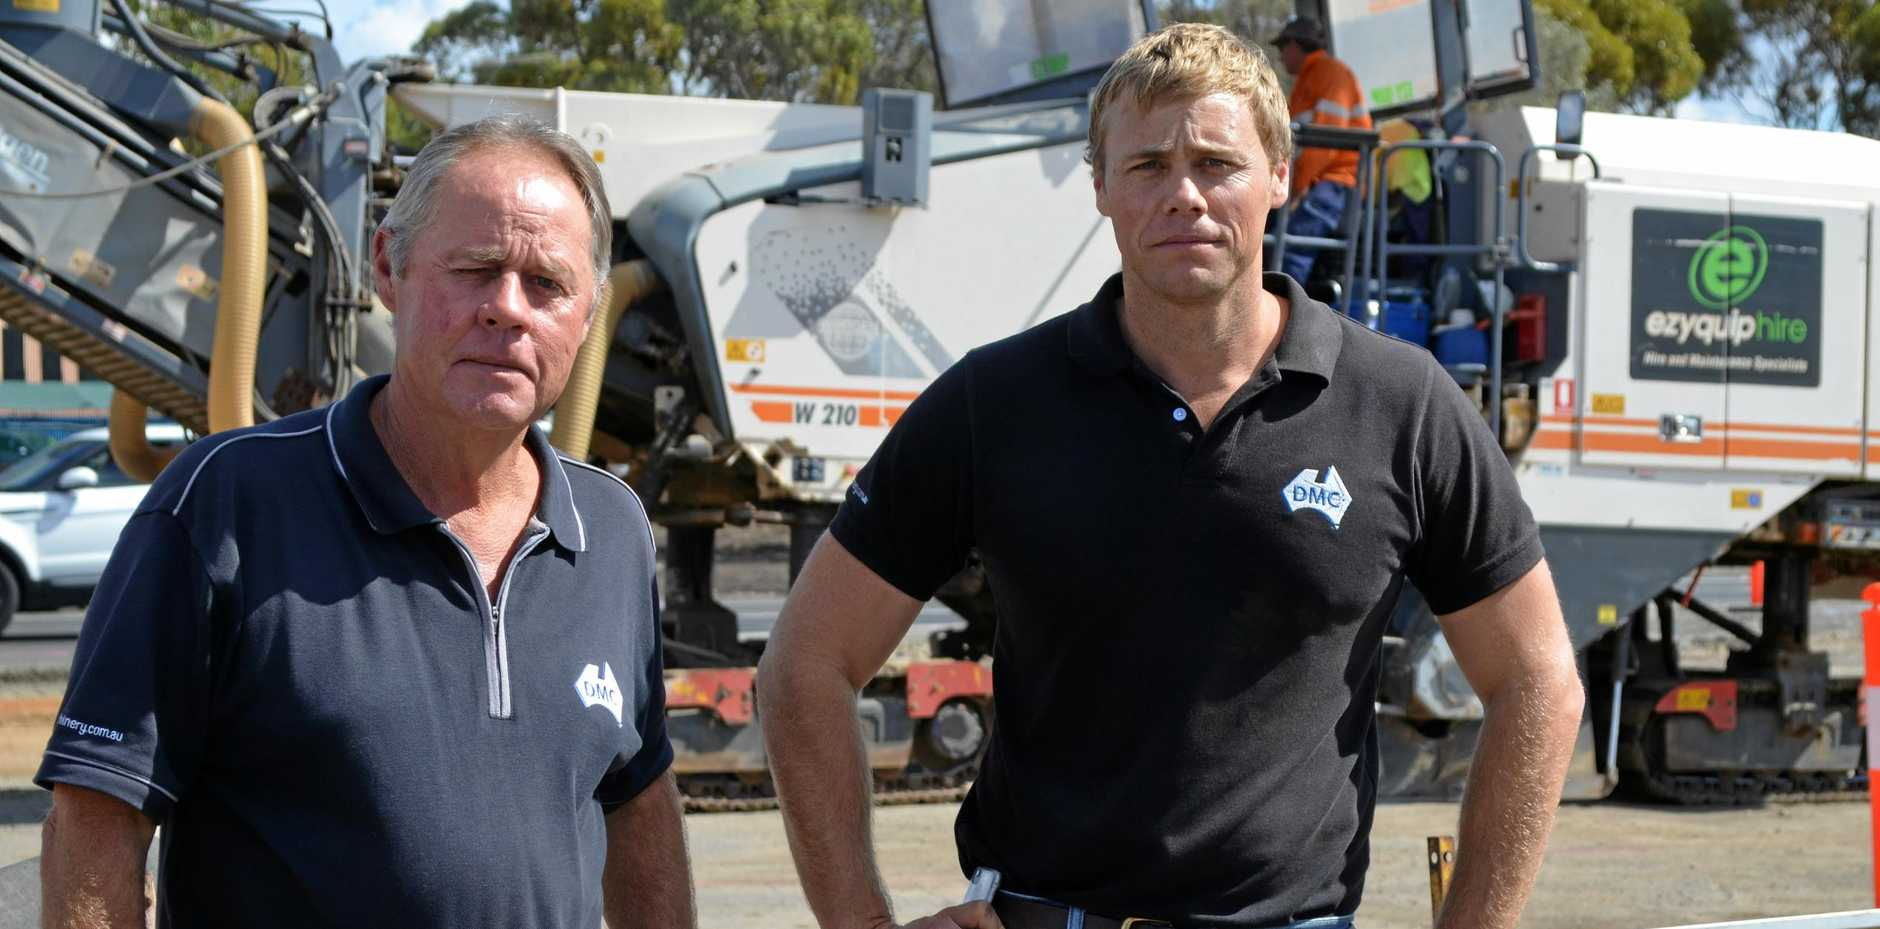 NOT HAPPY: Doug and Chris Machin are displeased with work being conducted by the Department of Transport and Main Roads.